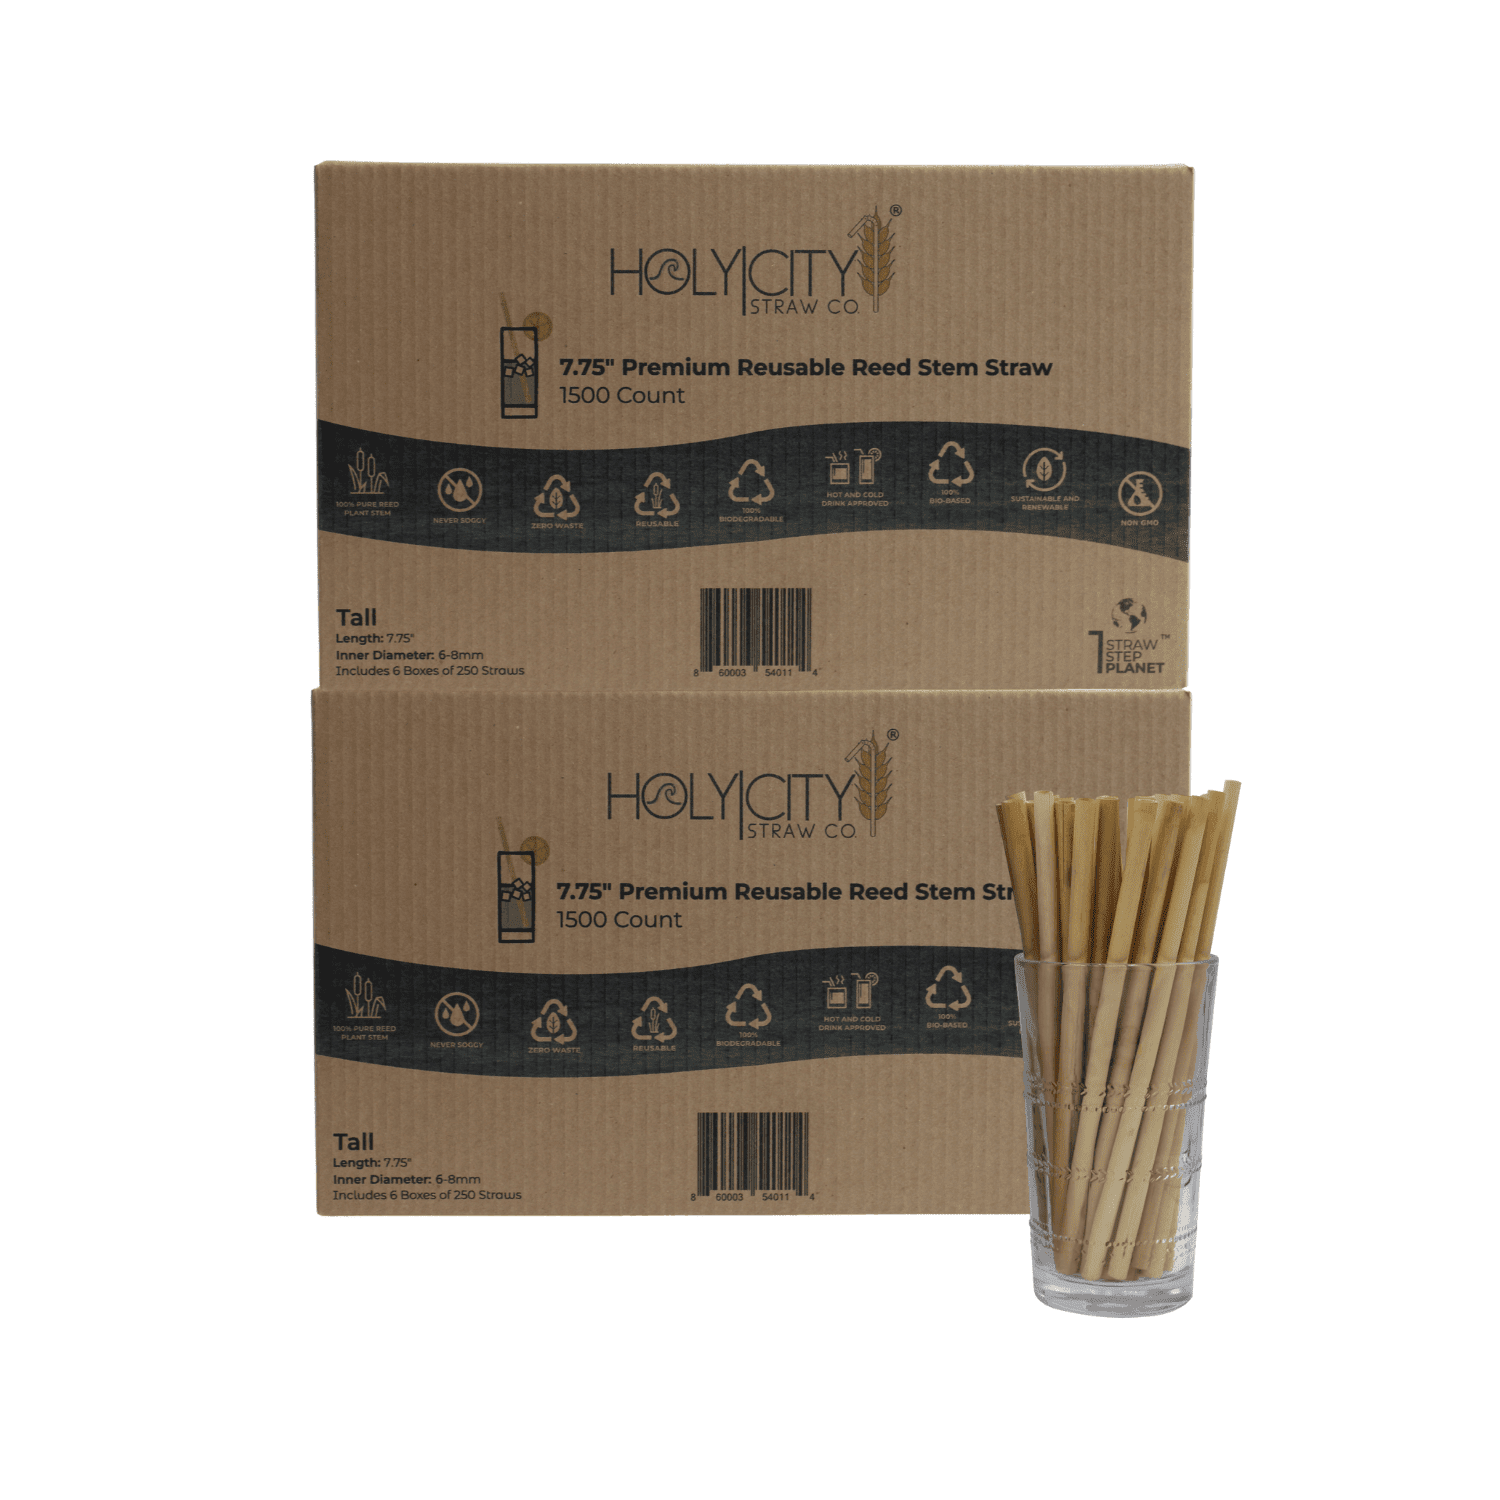 3000 count case containing 12 boxes of 250 ct boxes of Holy City tall reusable reed Straws